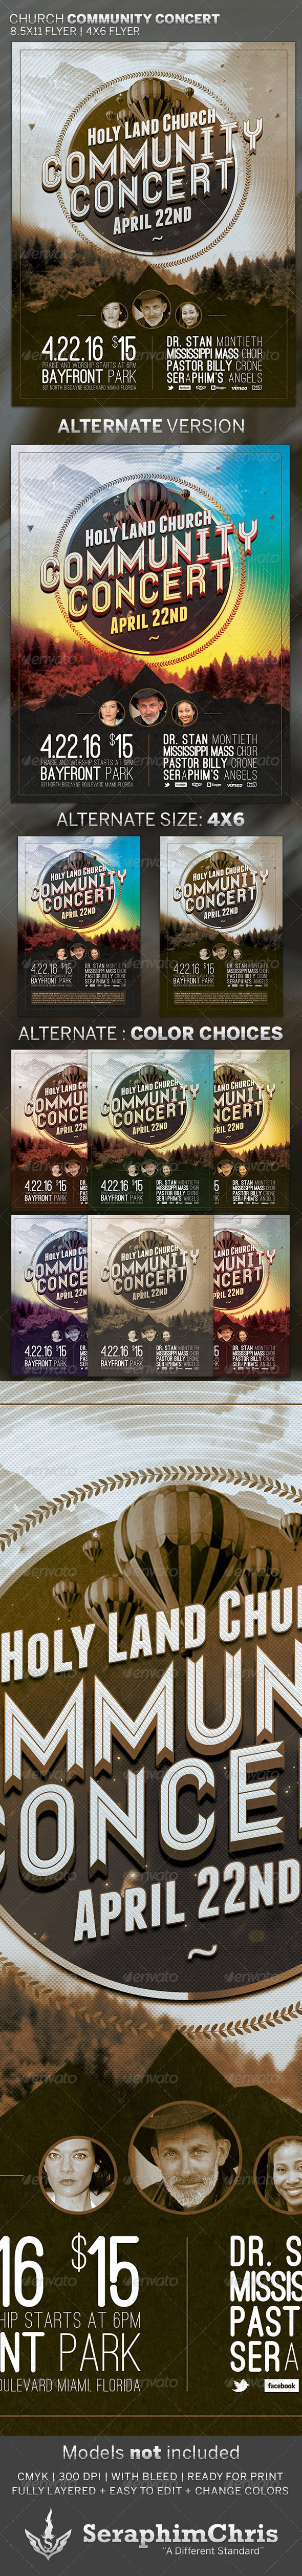 Church Community Concert: Flyer Template — Photoshop PSD #fall #vintage • Available here → https://graphicriver.net/item/church-community-concert-flyer-template/4363052?ref=pxcr